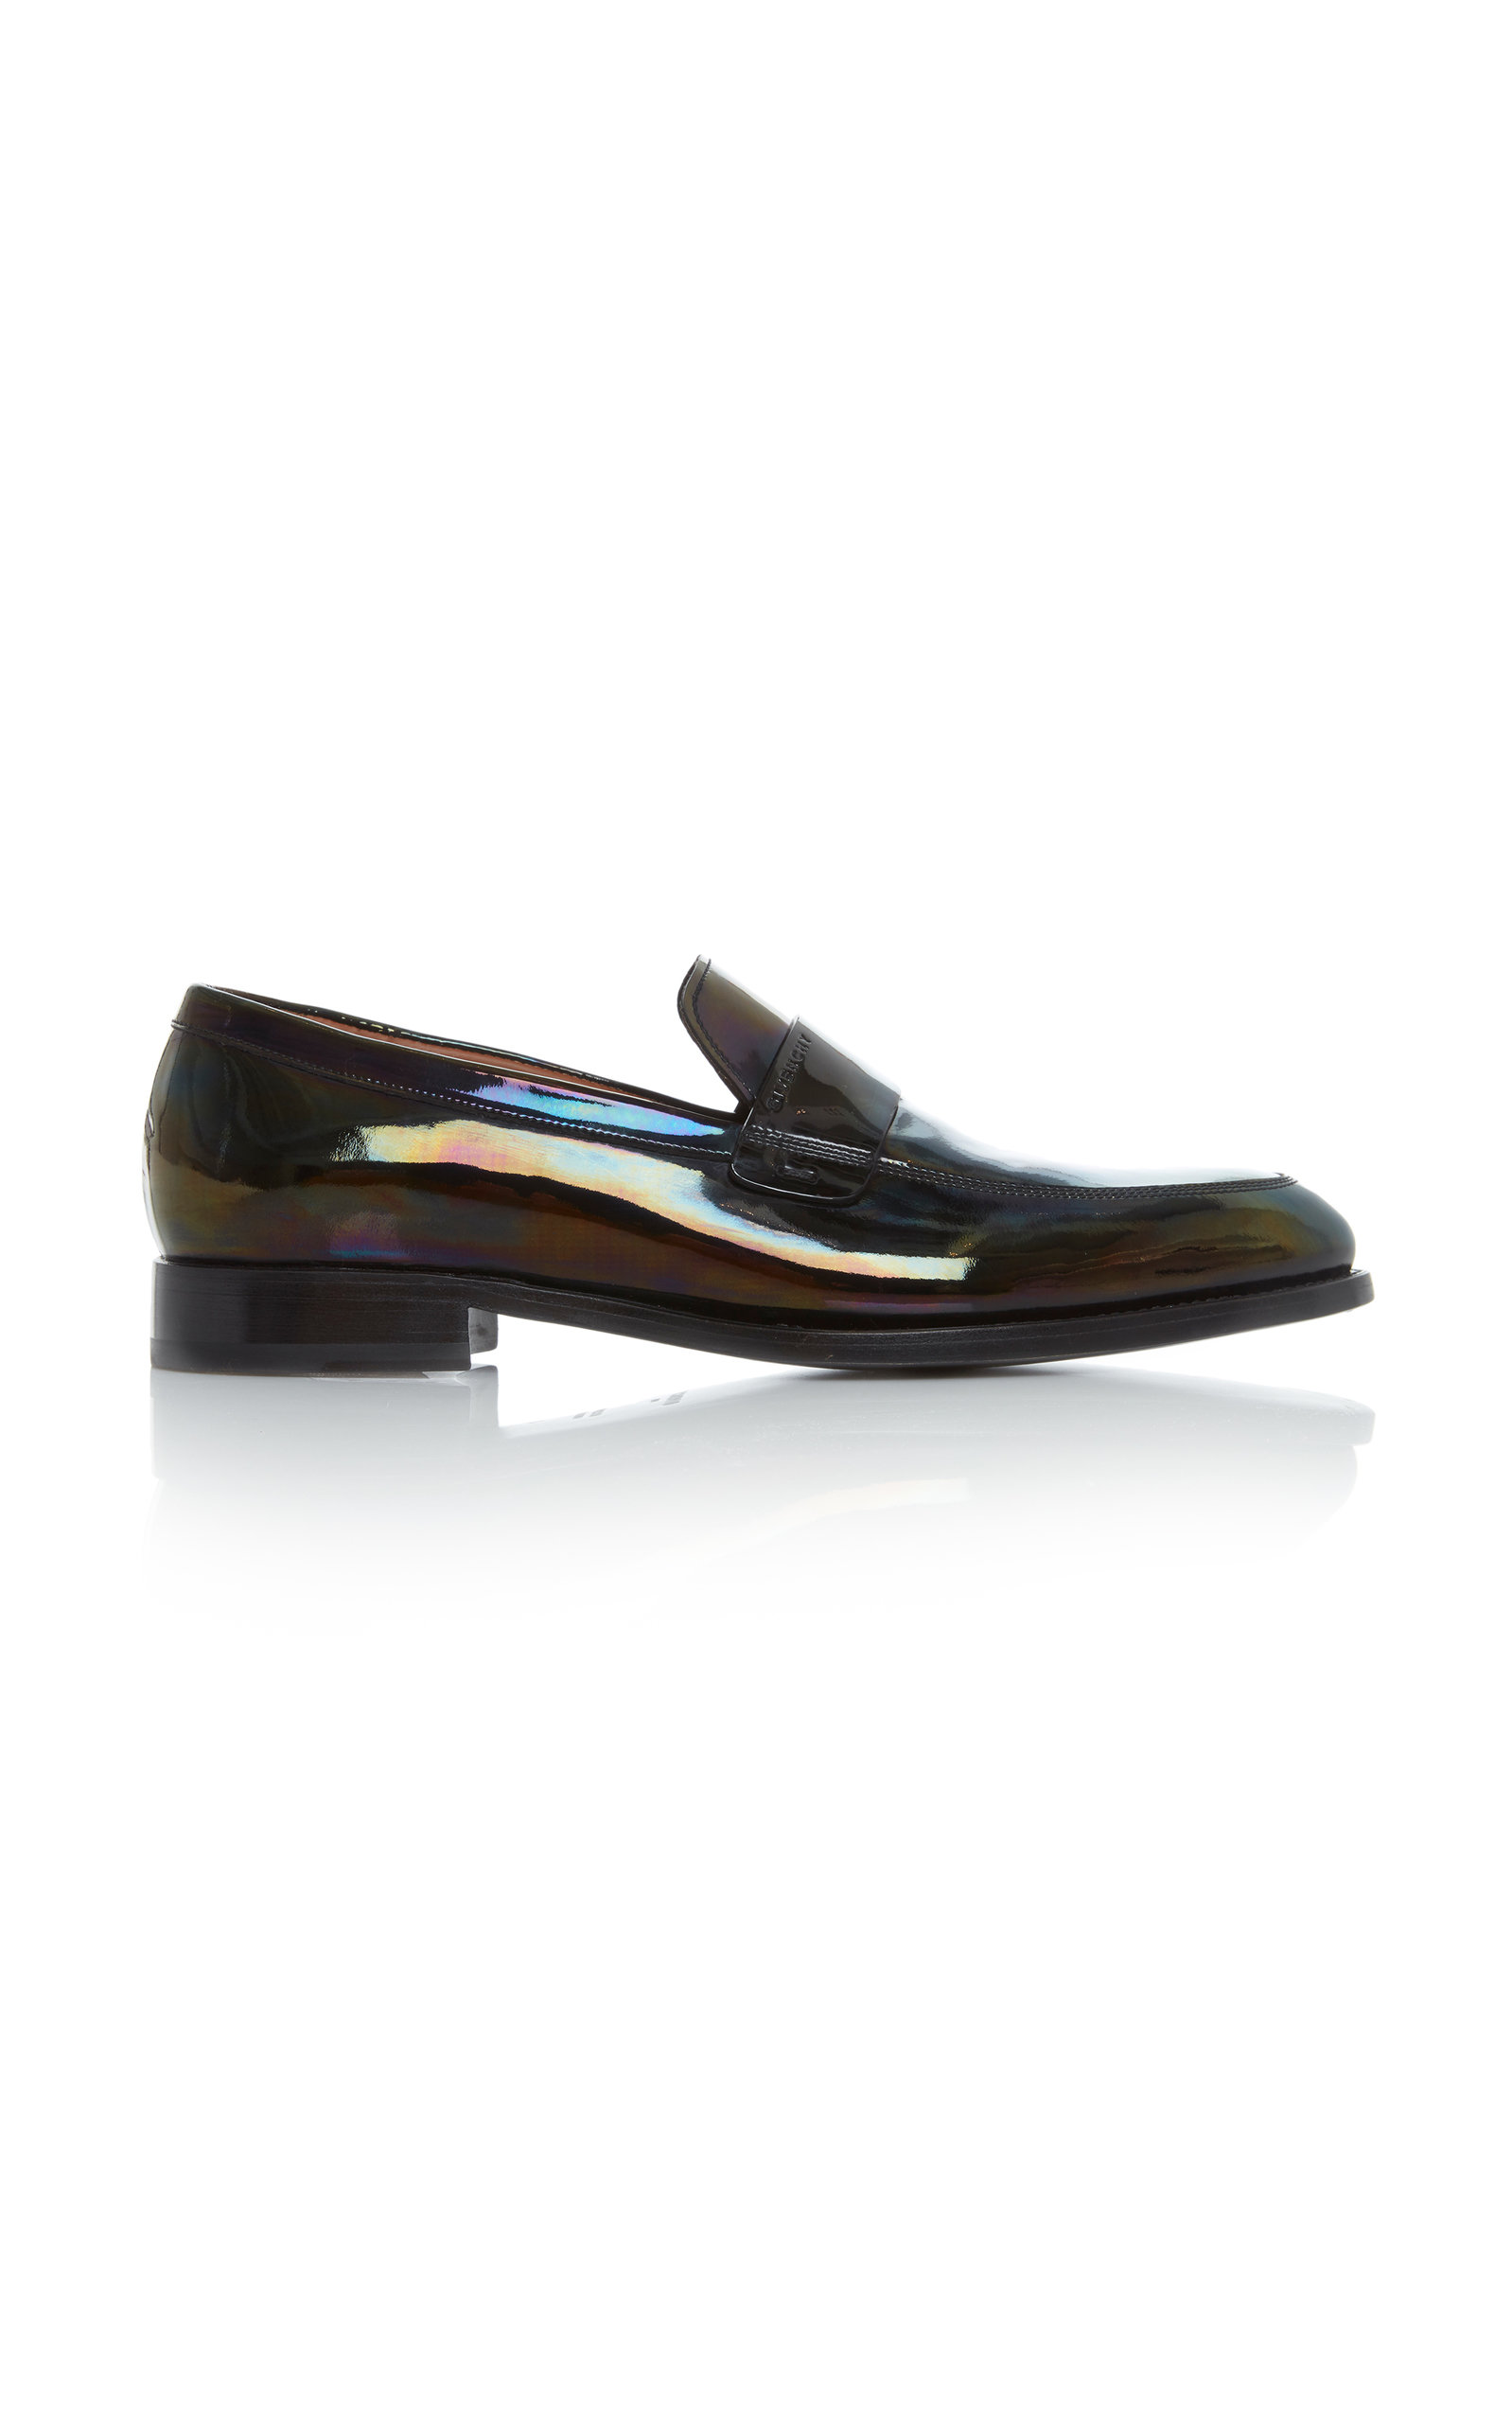 Givenchy Loafers Patent Leather Loafers